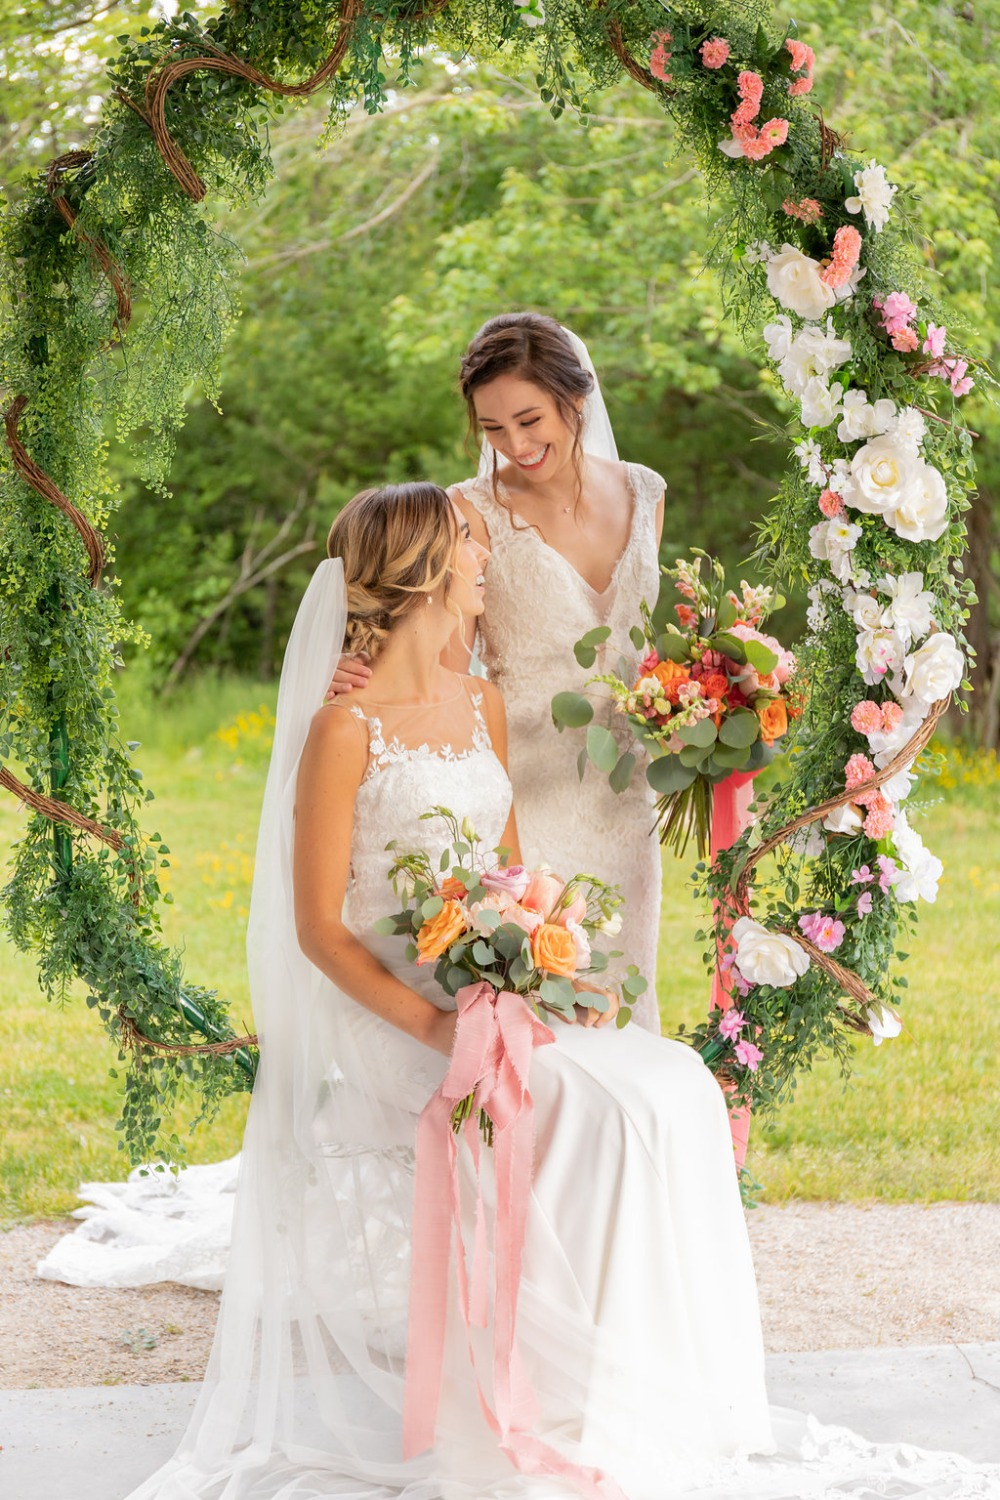 Two brides and a brunch wedding